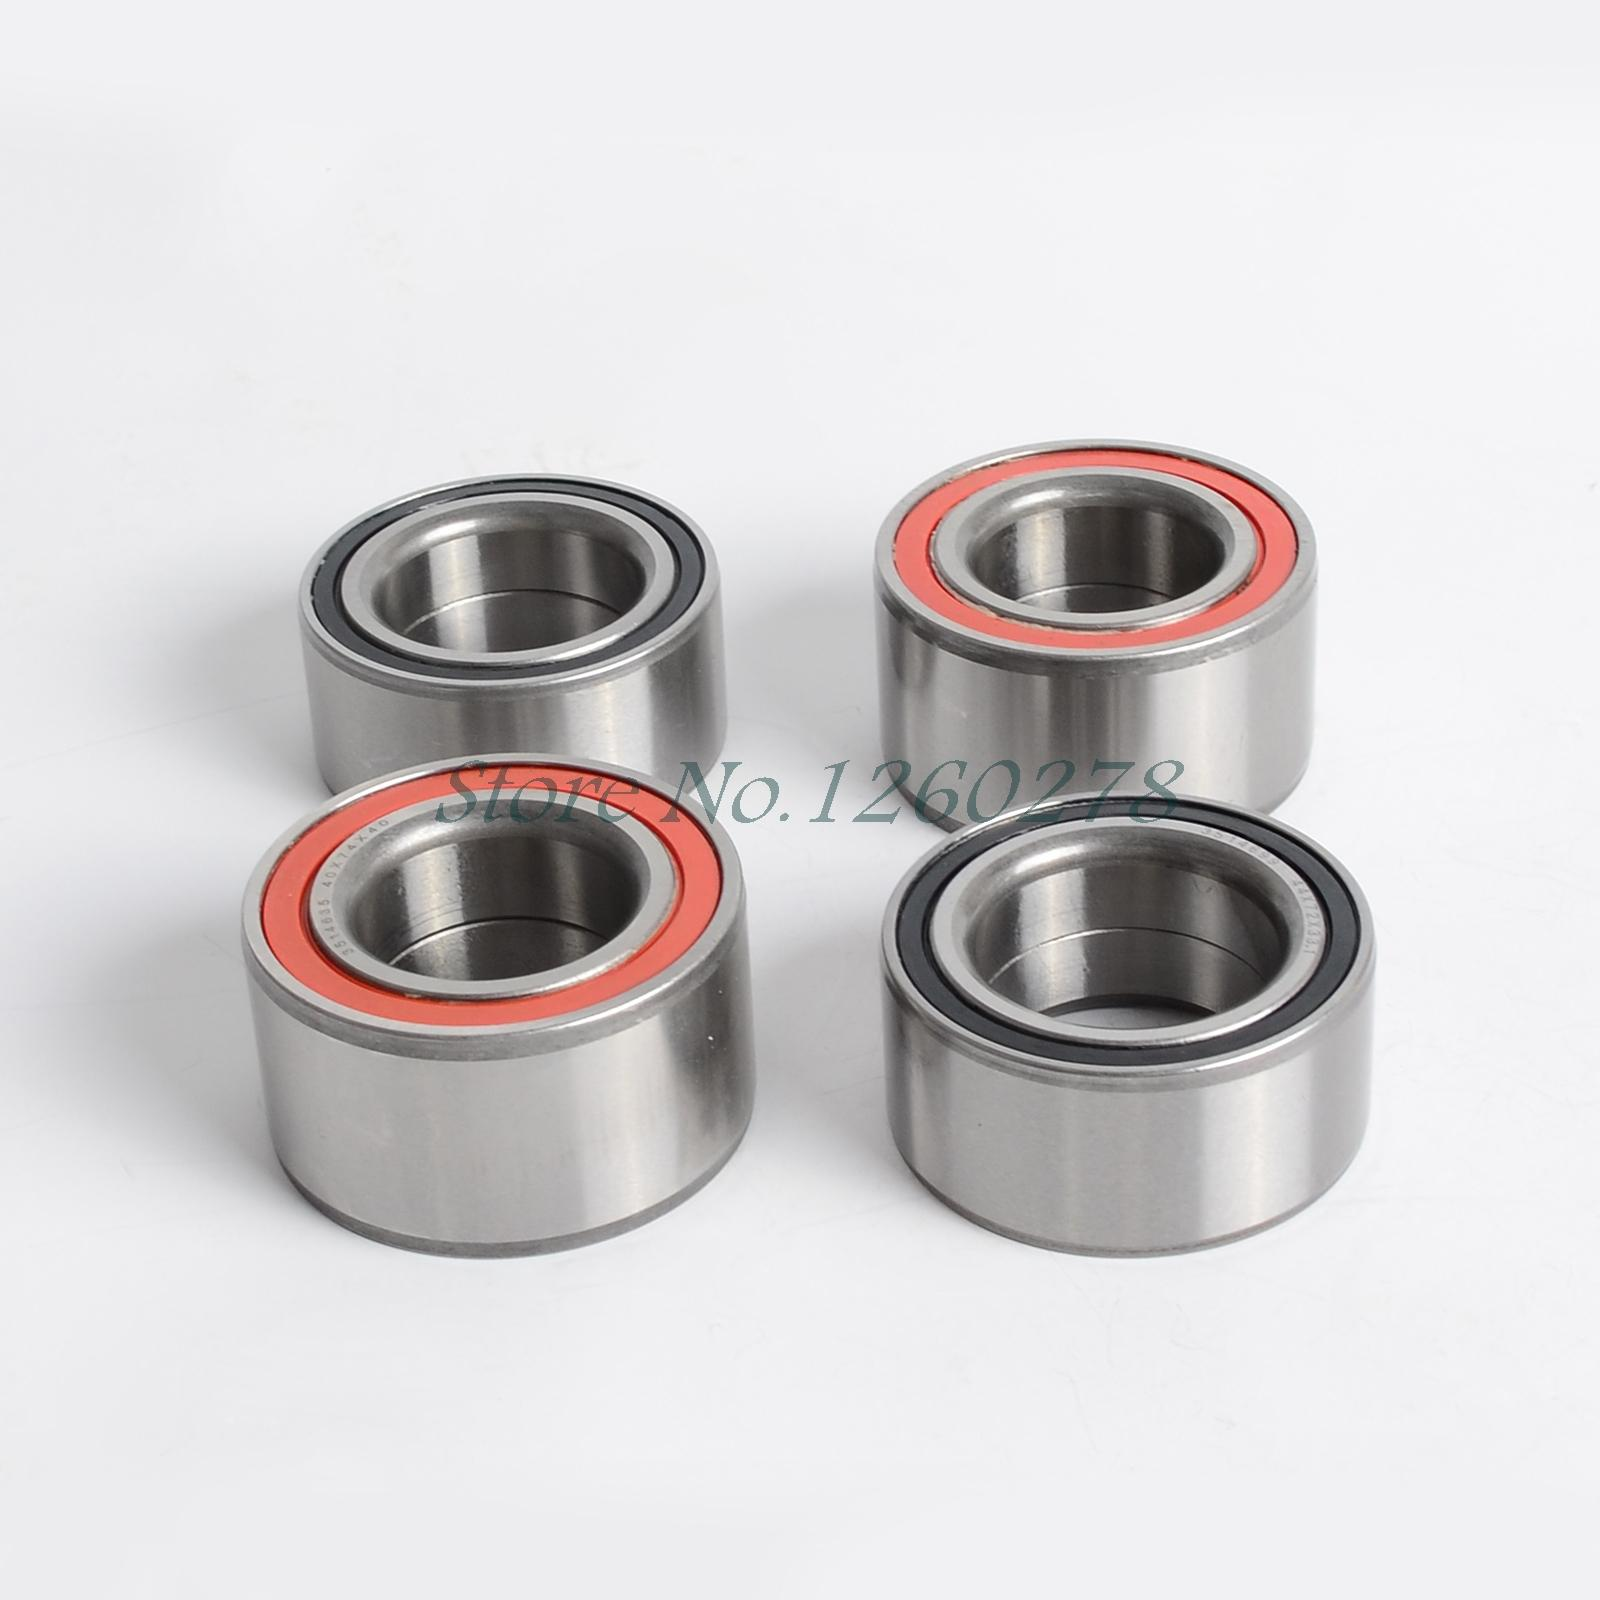 Both Front AND Rear Wheel Carrier Bearings For Polaris RZR 800 / S 800 / 4  2010 2011 2012 2013 2014